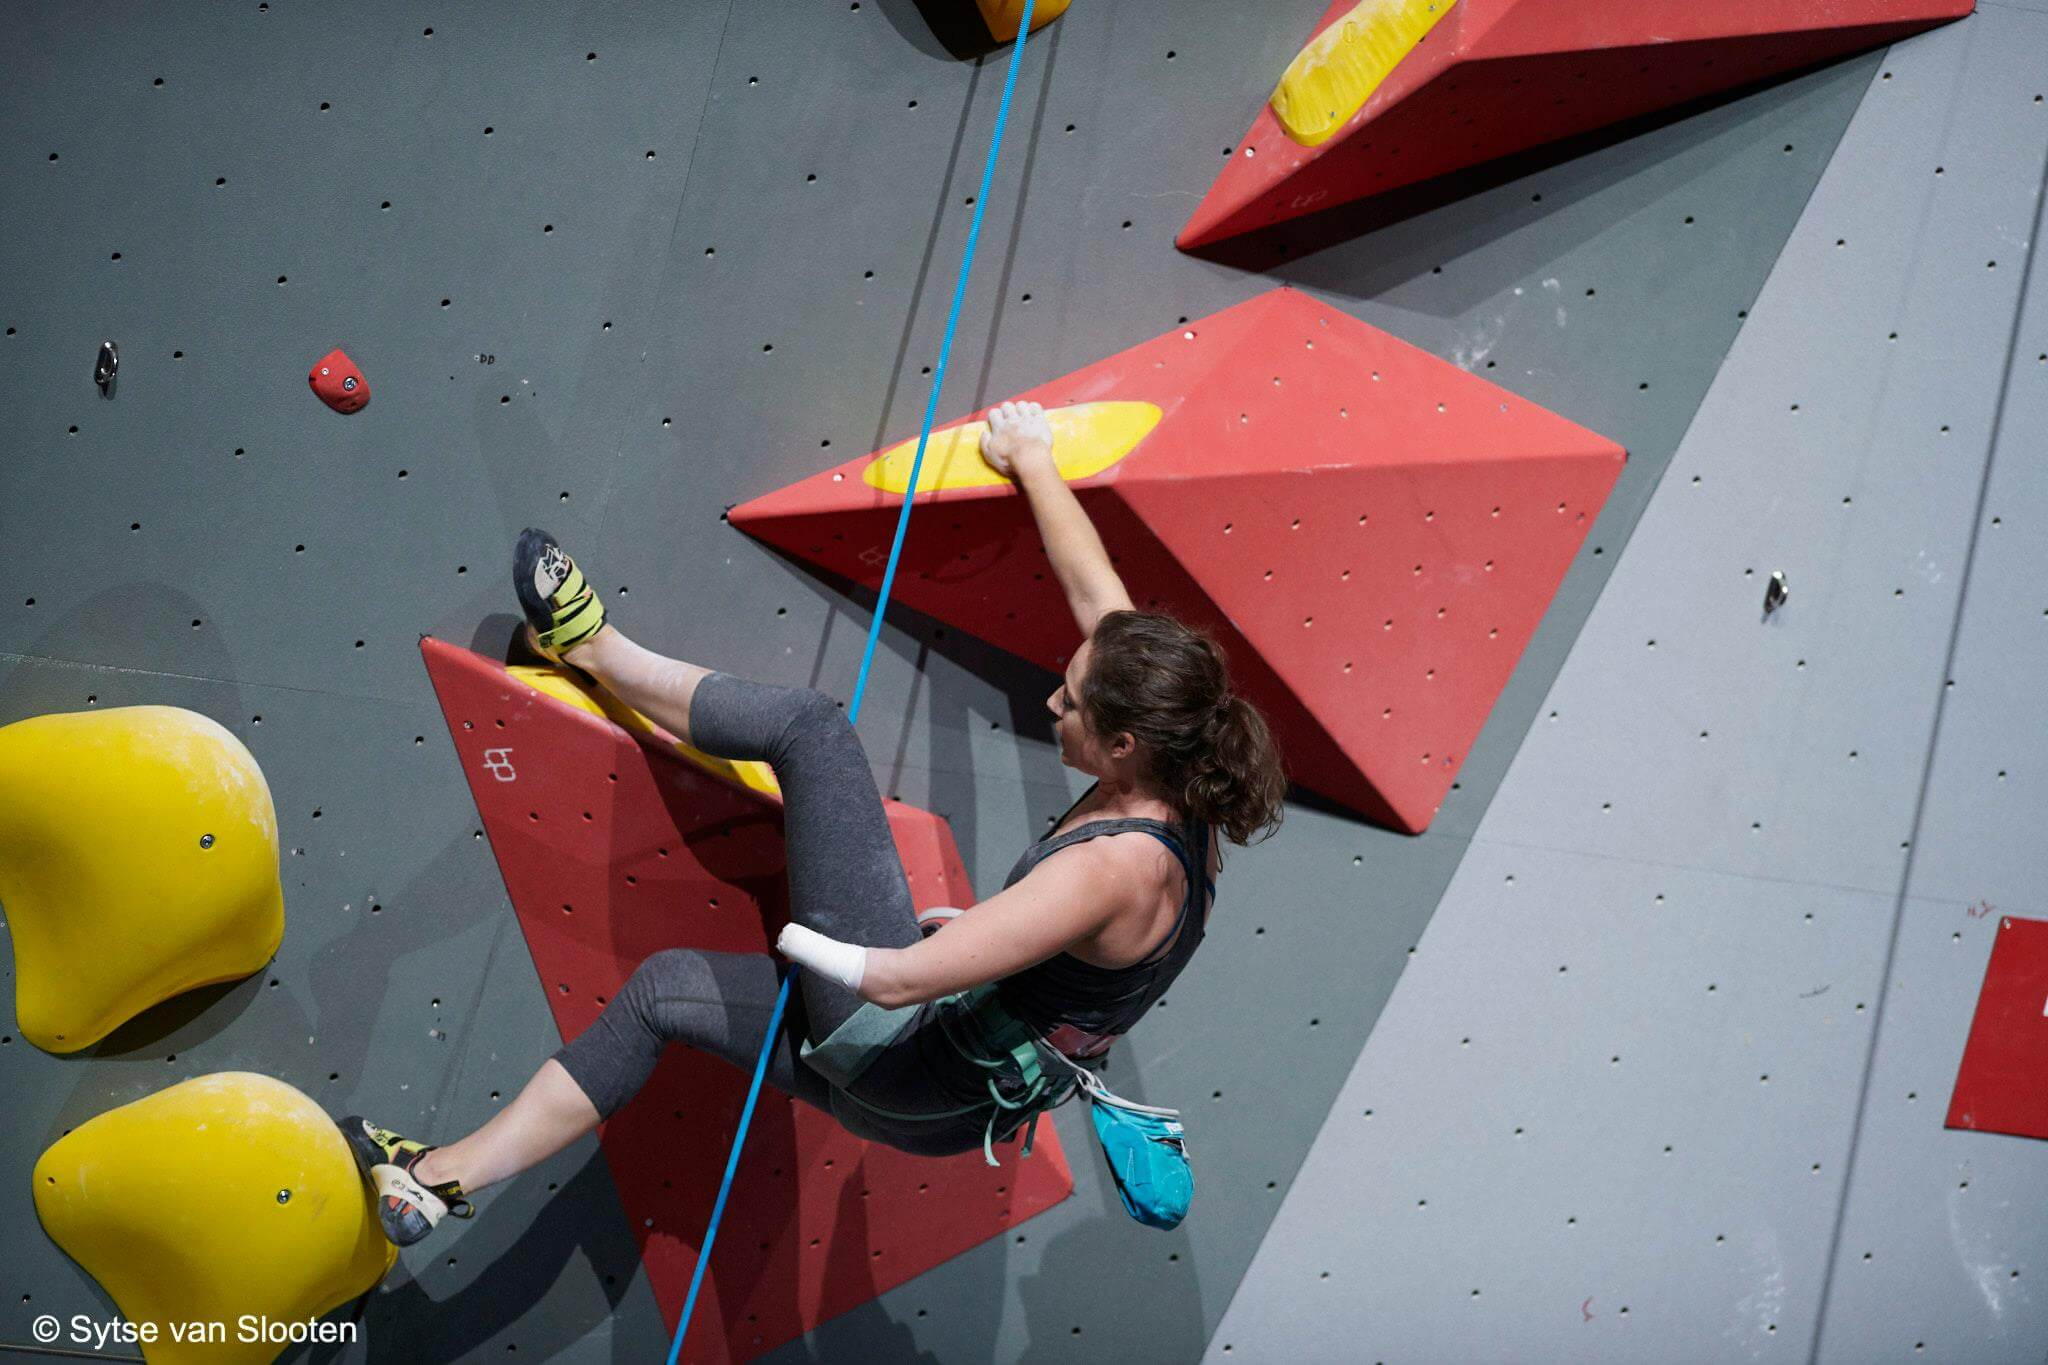 USA's Maureen (Mo) Beck, AU2 2014/16 world champion and 2018 bronze medalist, at the 2018 paraclimbing world championships, Innsbruck